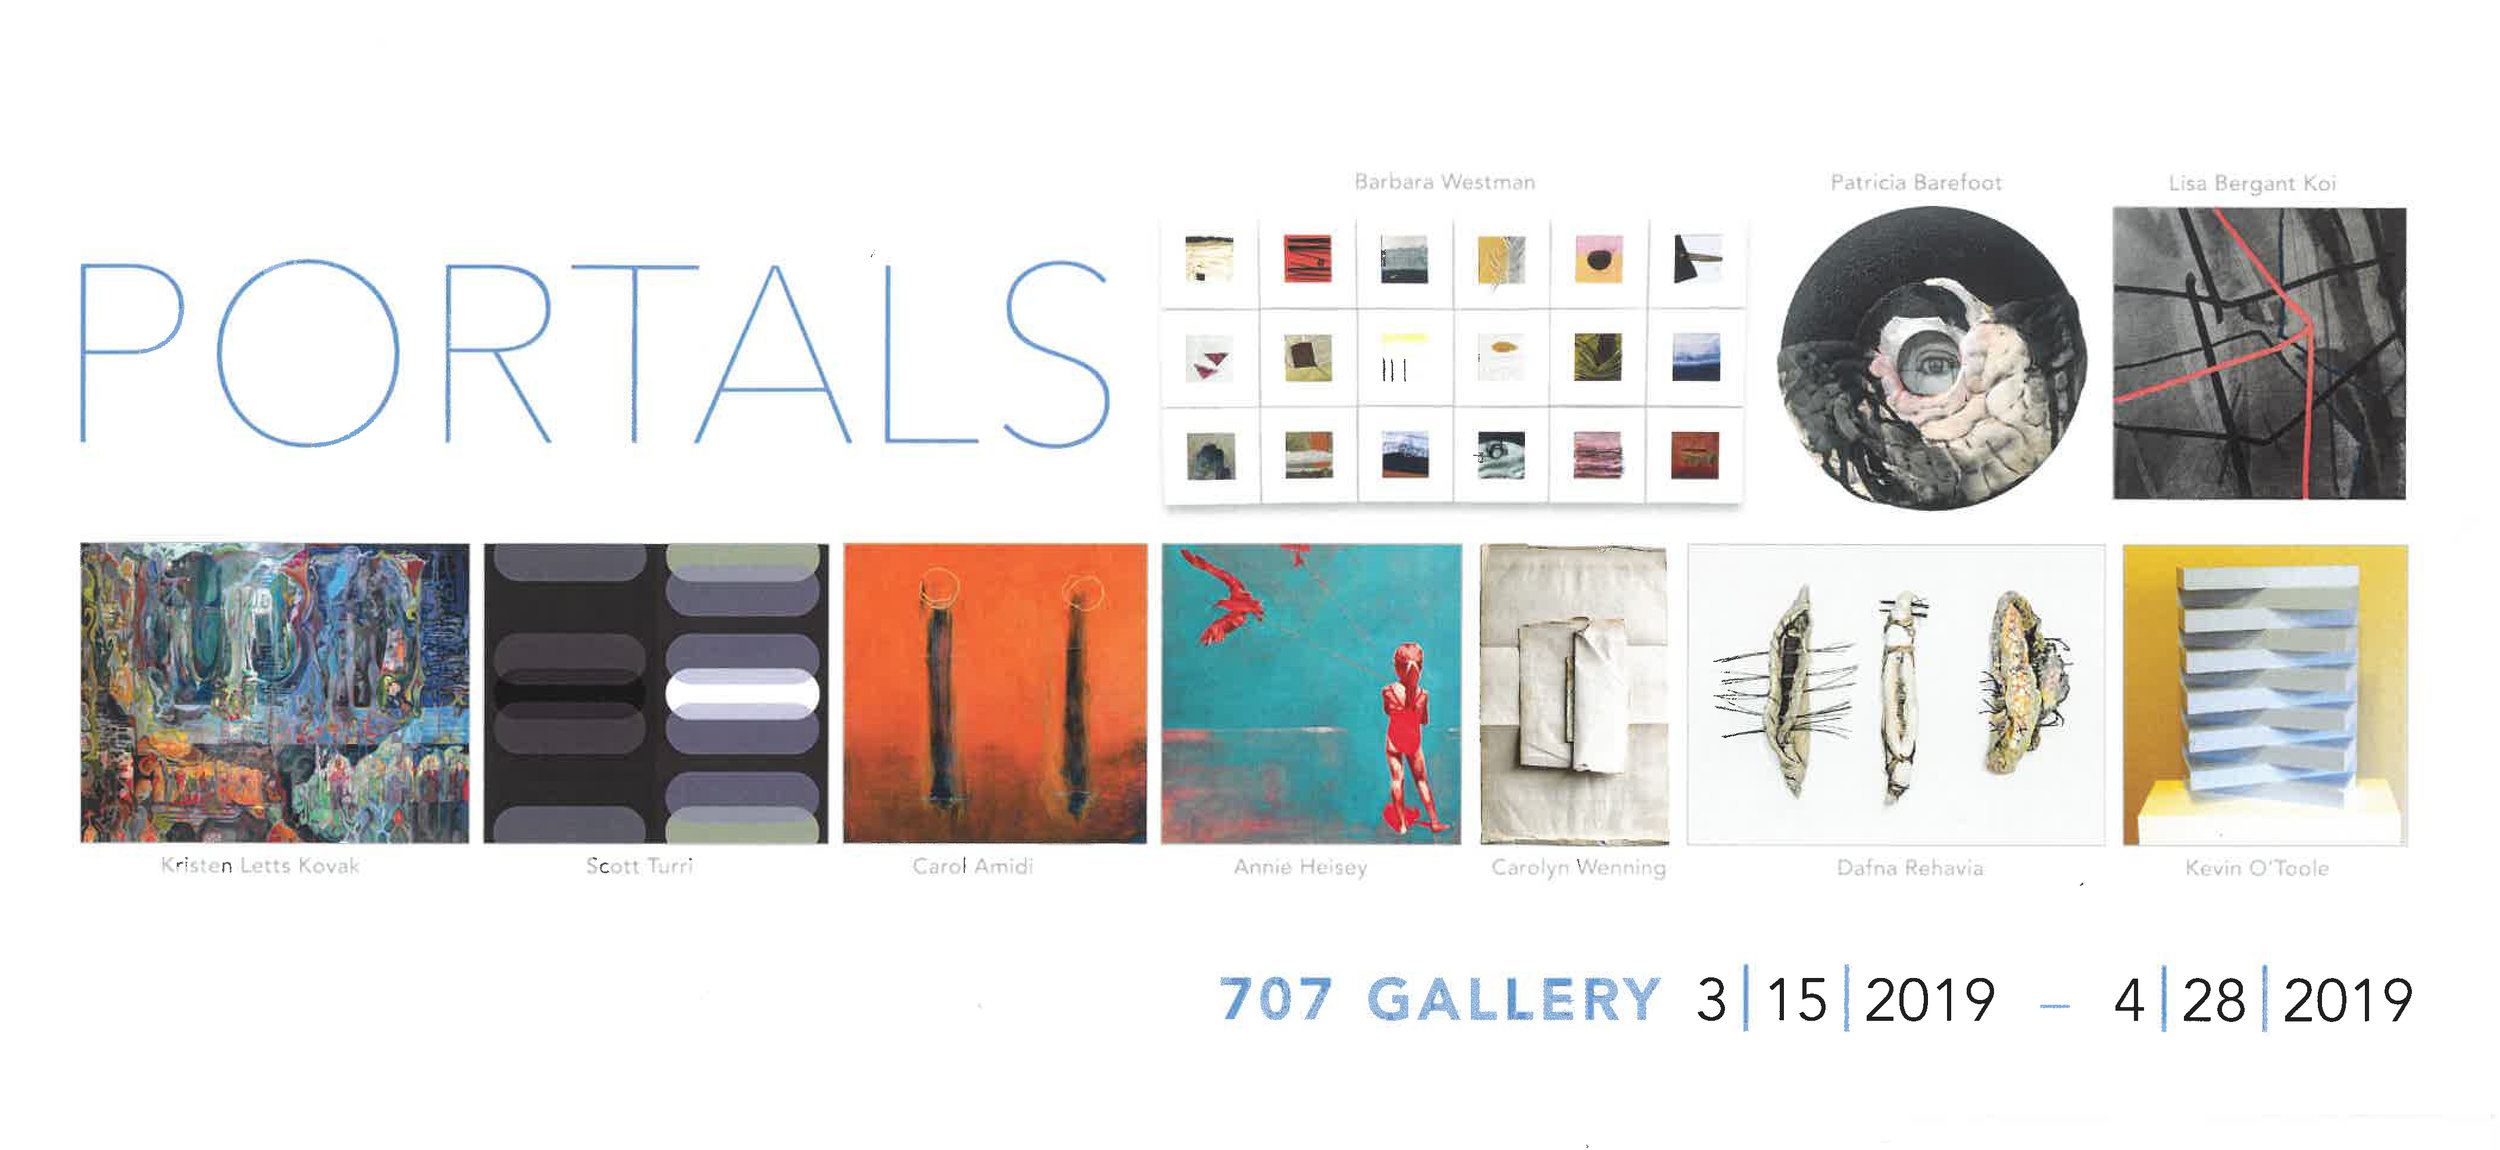 707/709 Galleries, 707 Penn Ave, Pittsburgh, PA 15222